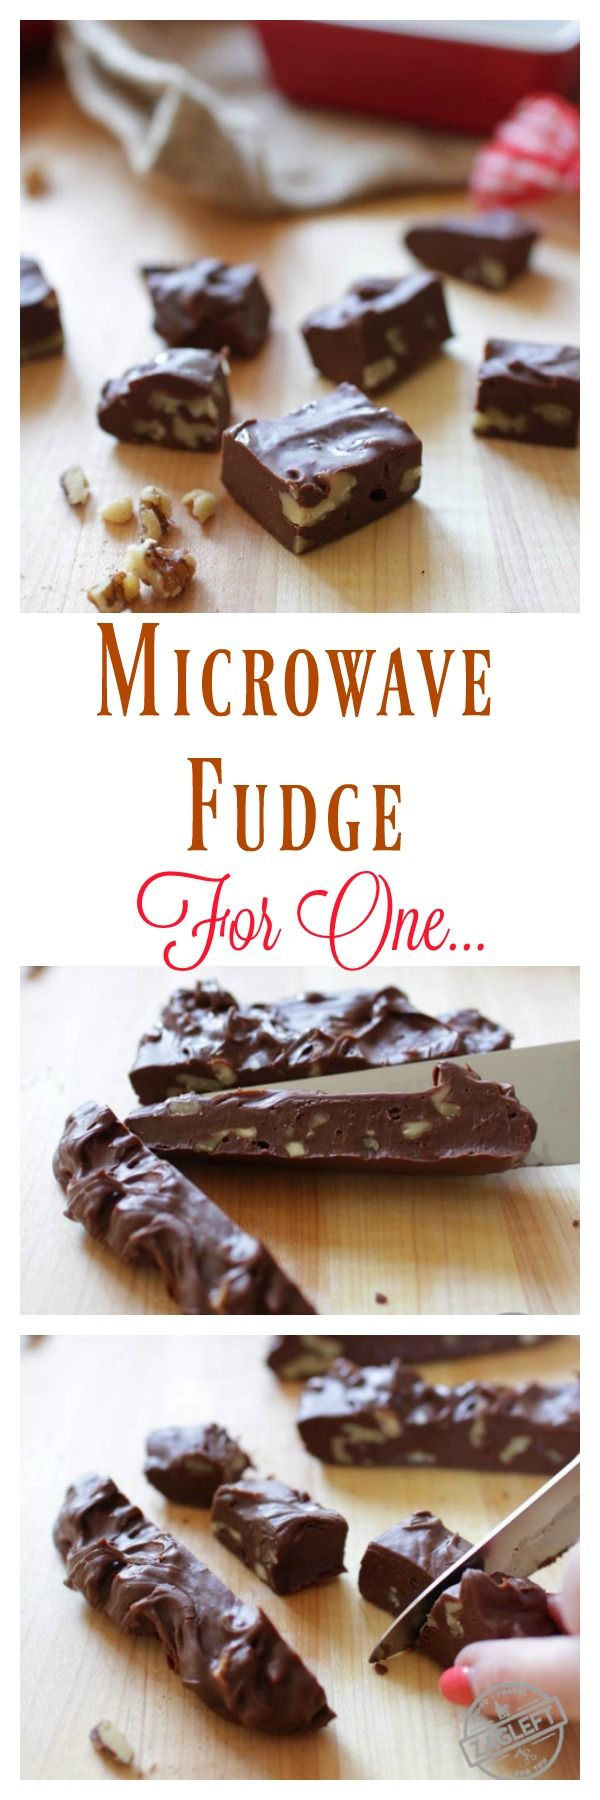 Homemade Microwave Fudge For One – a single serving recipe for rich, smooth, incredible chocolate fudge. One bowl and a microwave is all you need to make this scaled down version of my favorite fudge recipe! | zagleft.com